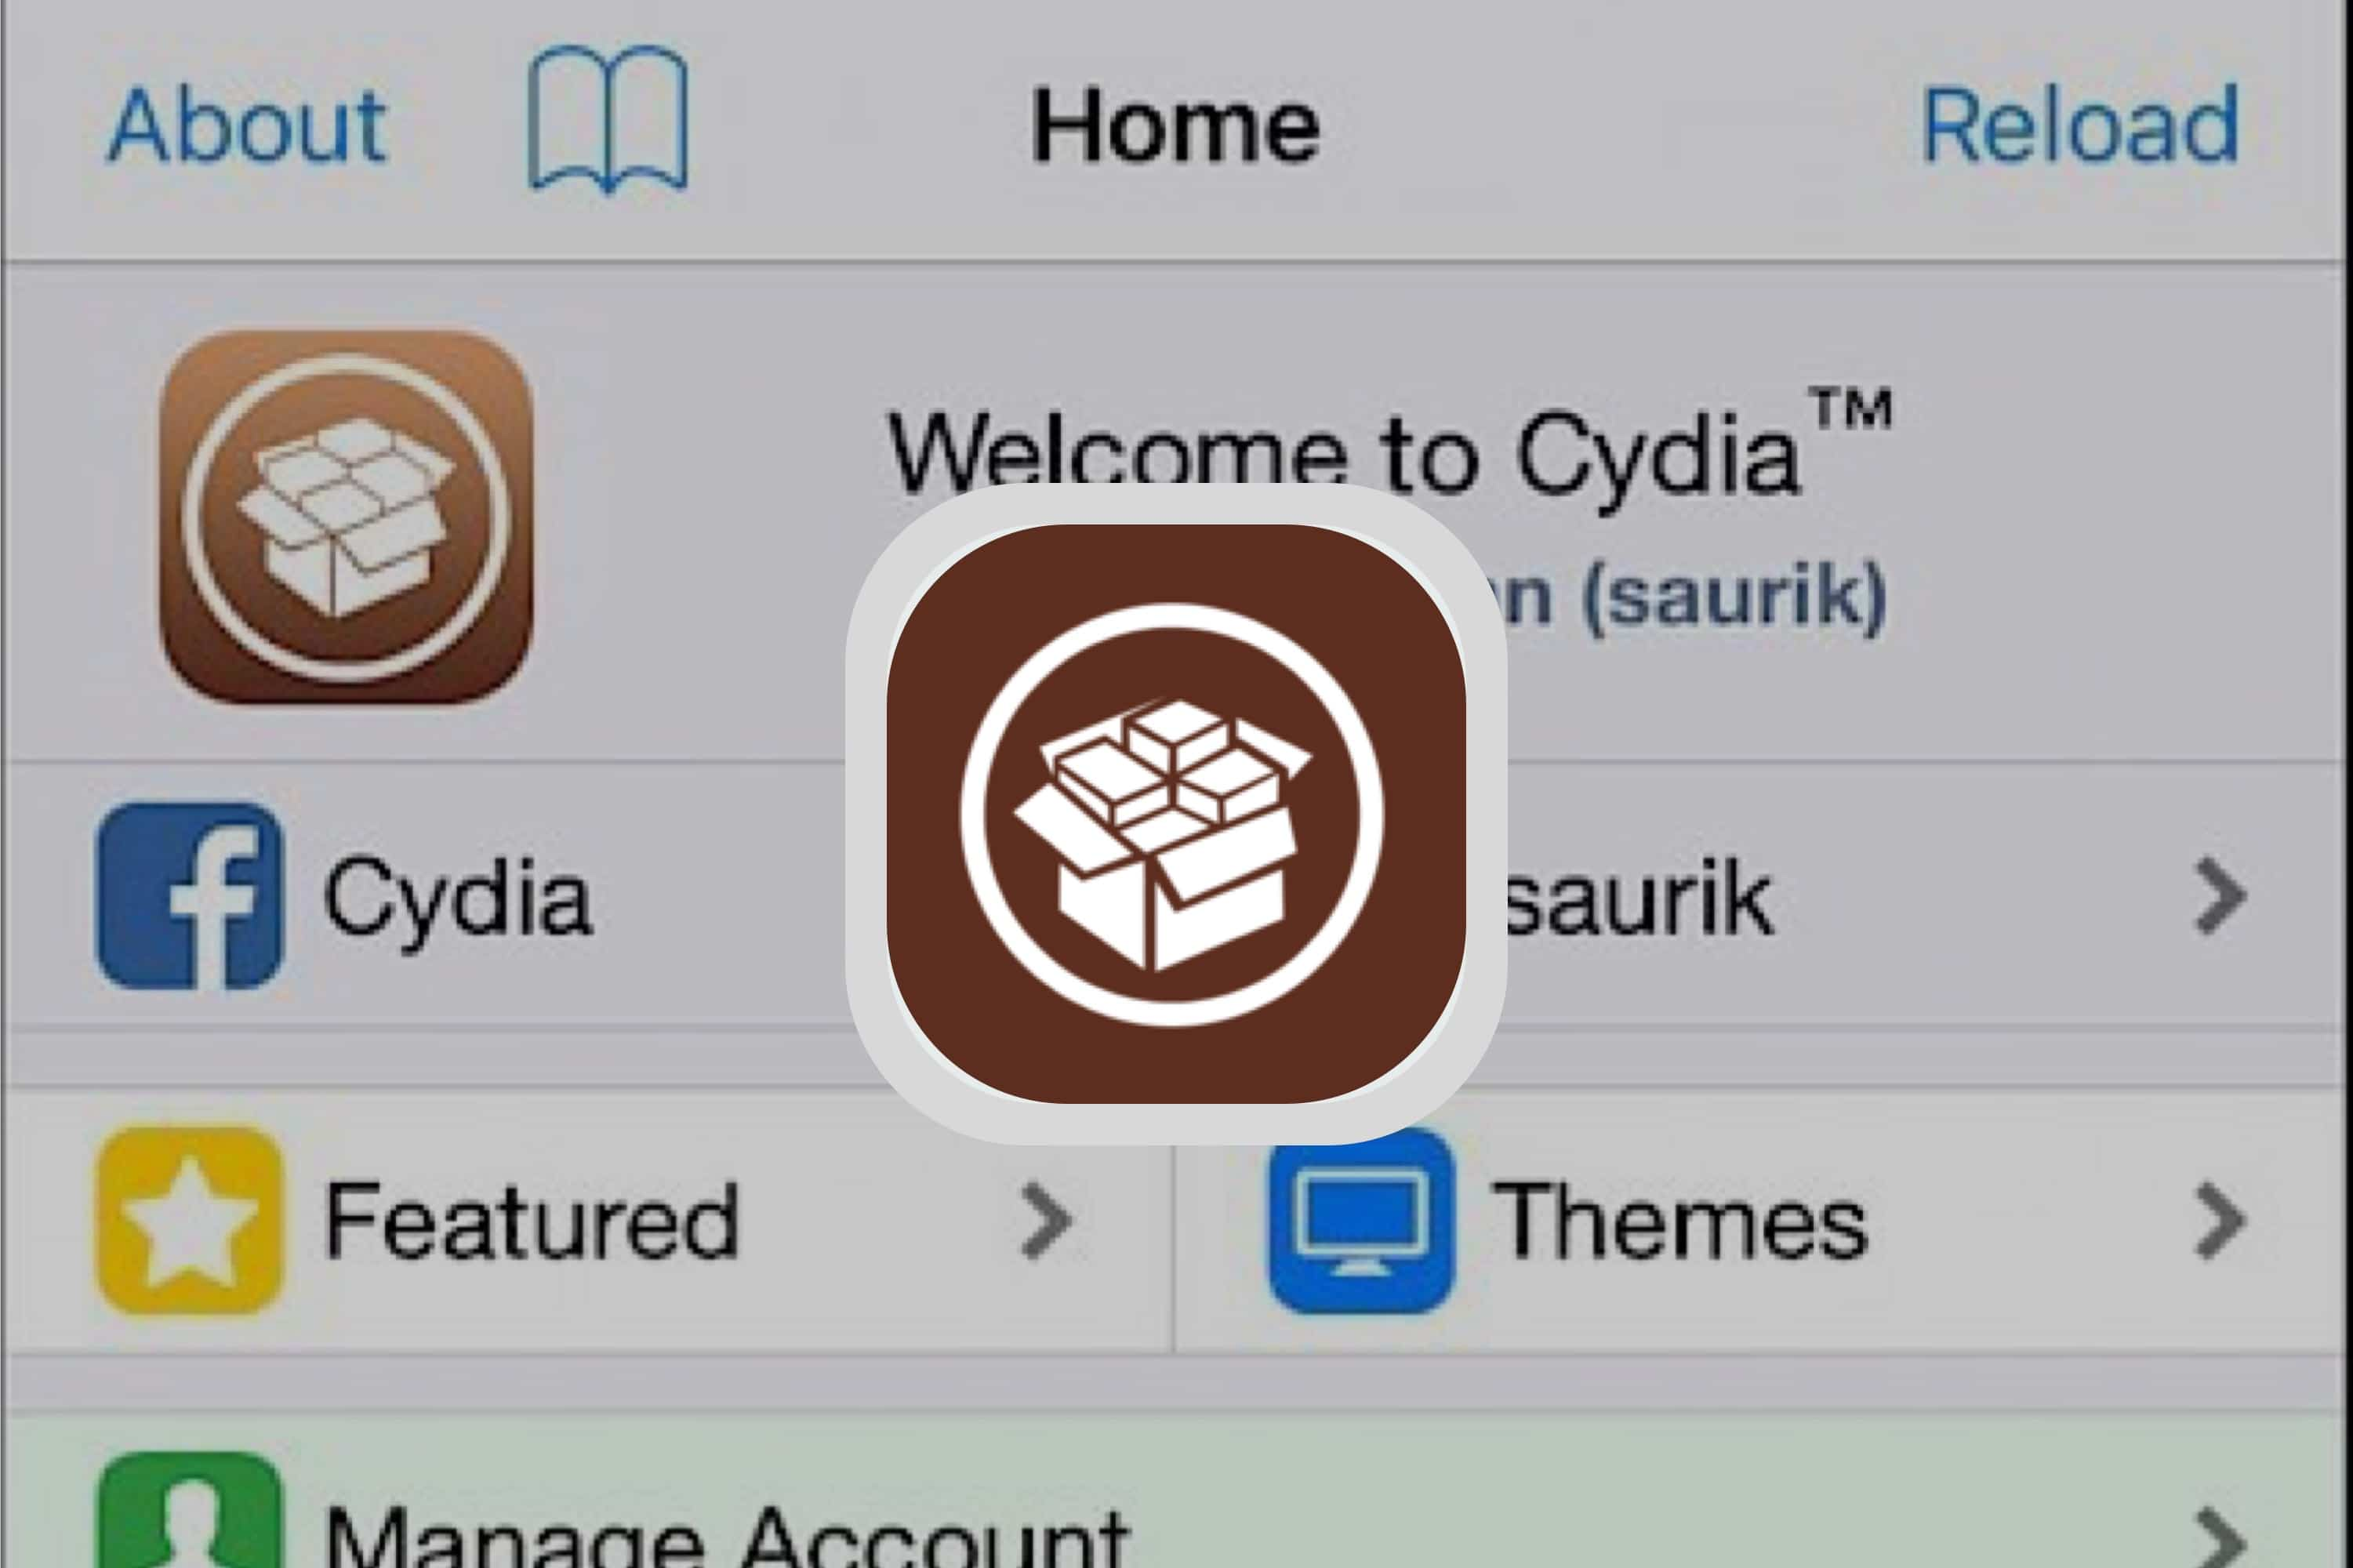 cydia-app-store-sues-apple-for-illegal-distribution-monopoly-20201210-1